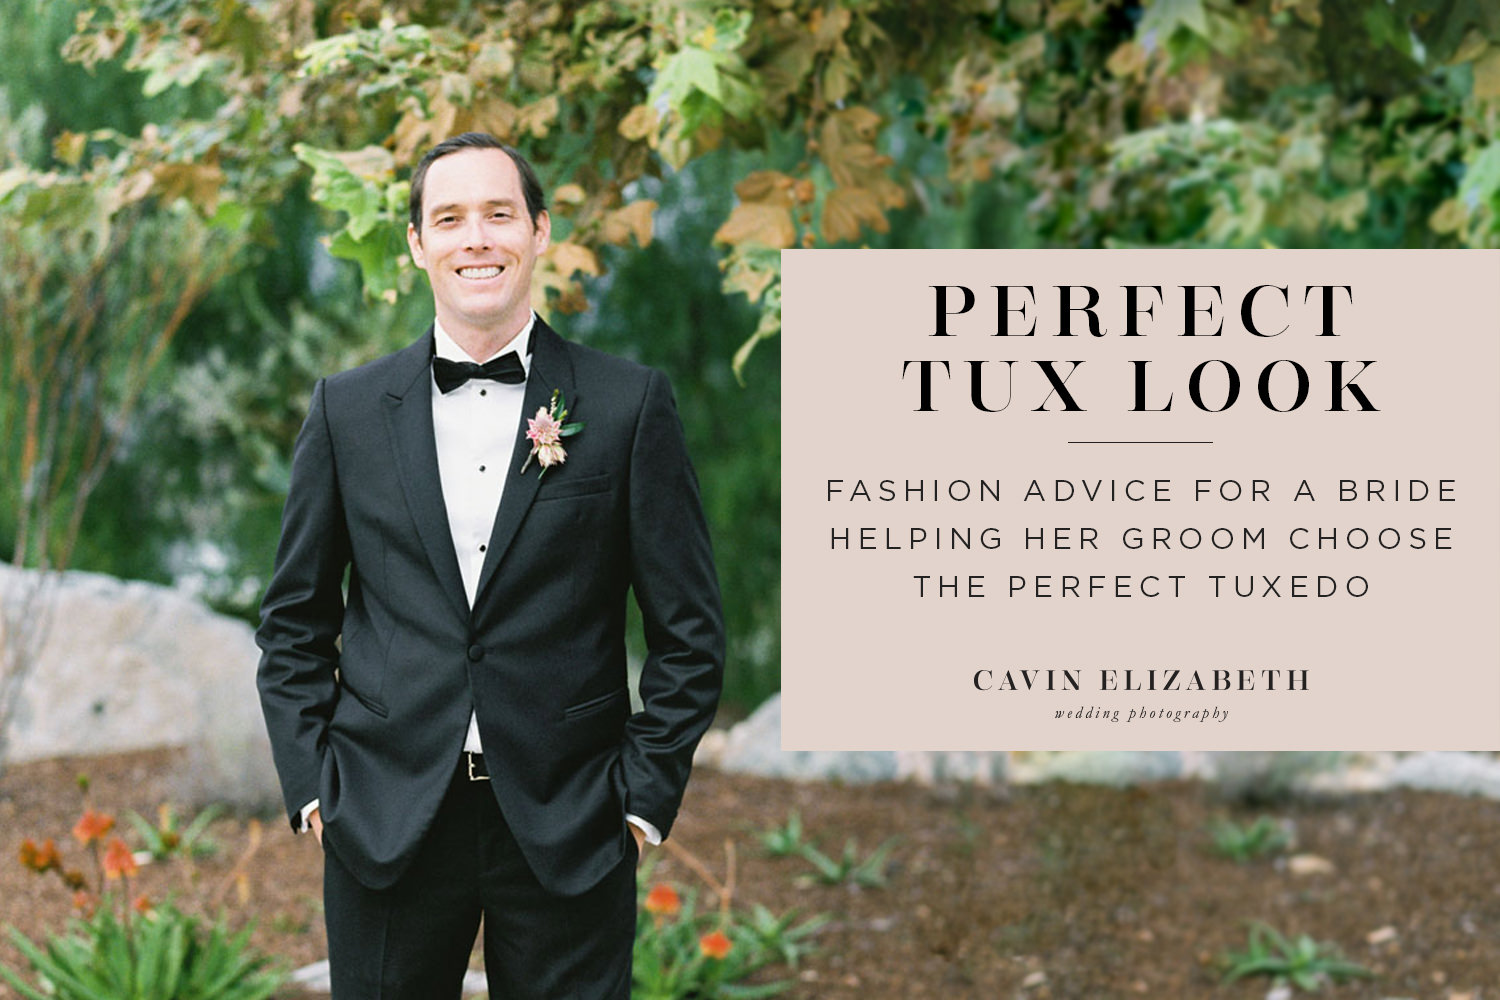 Fashion Advice for a Bride Helping Her Groom Choose the Perfect Tuxedo